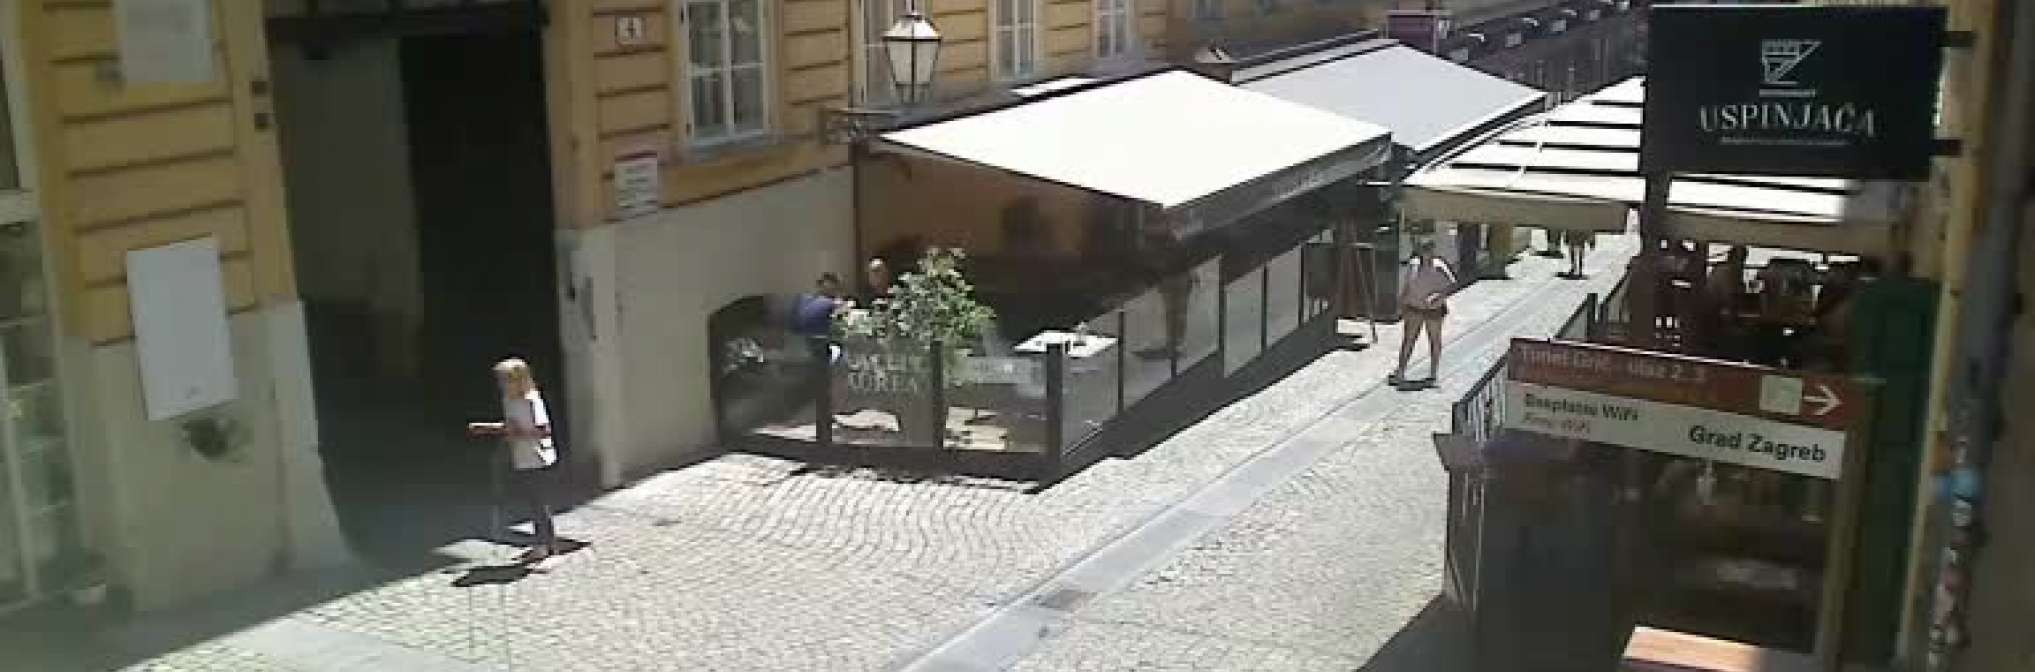 Zagreb Tomiceva Street Zagreb Right Now Live Livestreaming Cameras From Croatia Livecamcroatia Explore Croatia